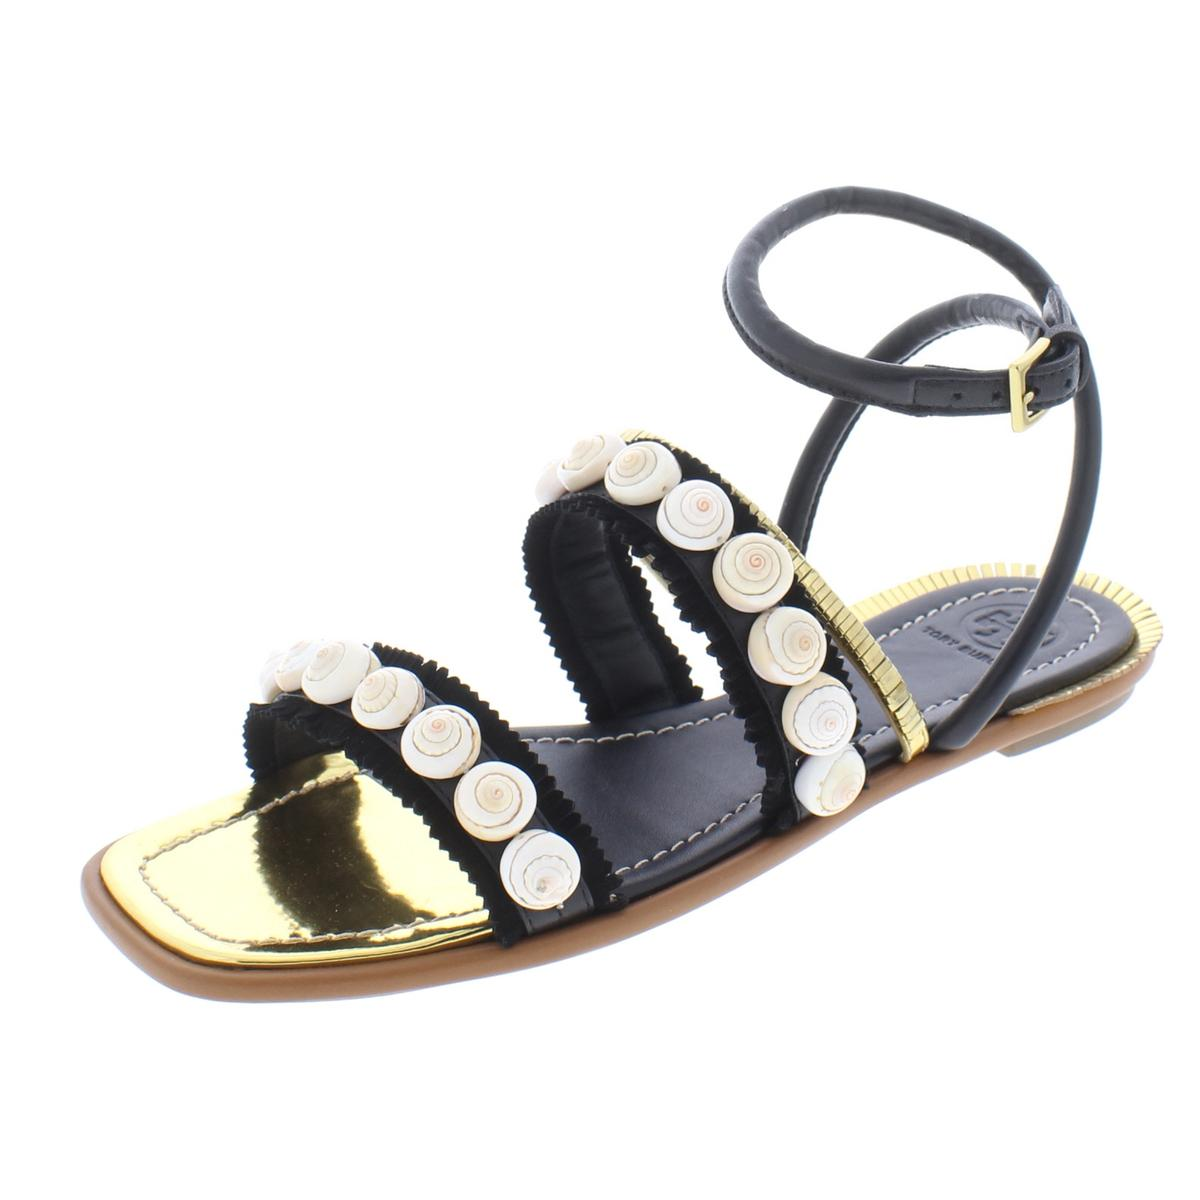 0319c9c0c9a58a Details about Tory Burch Womens Sinclair Black Flat Sandals Shoes 9 Medium  (B